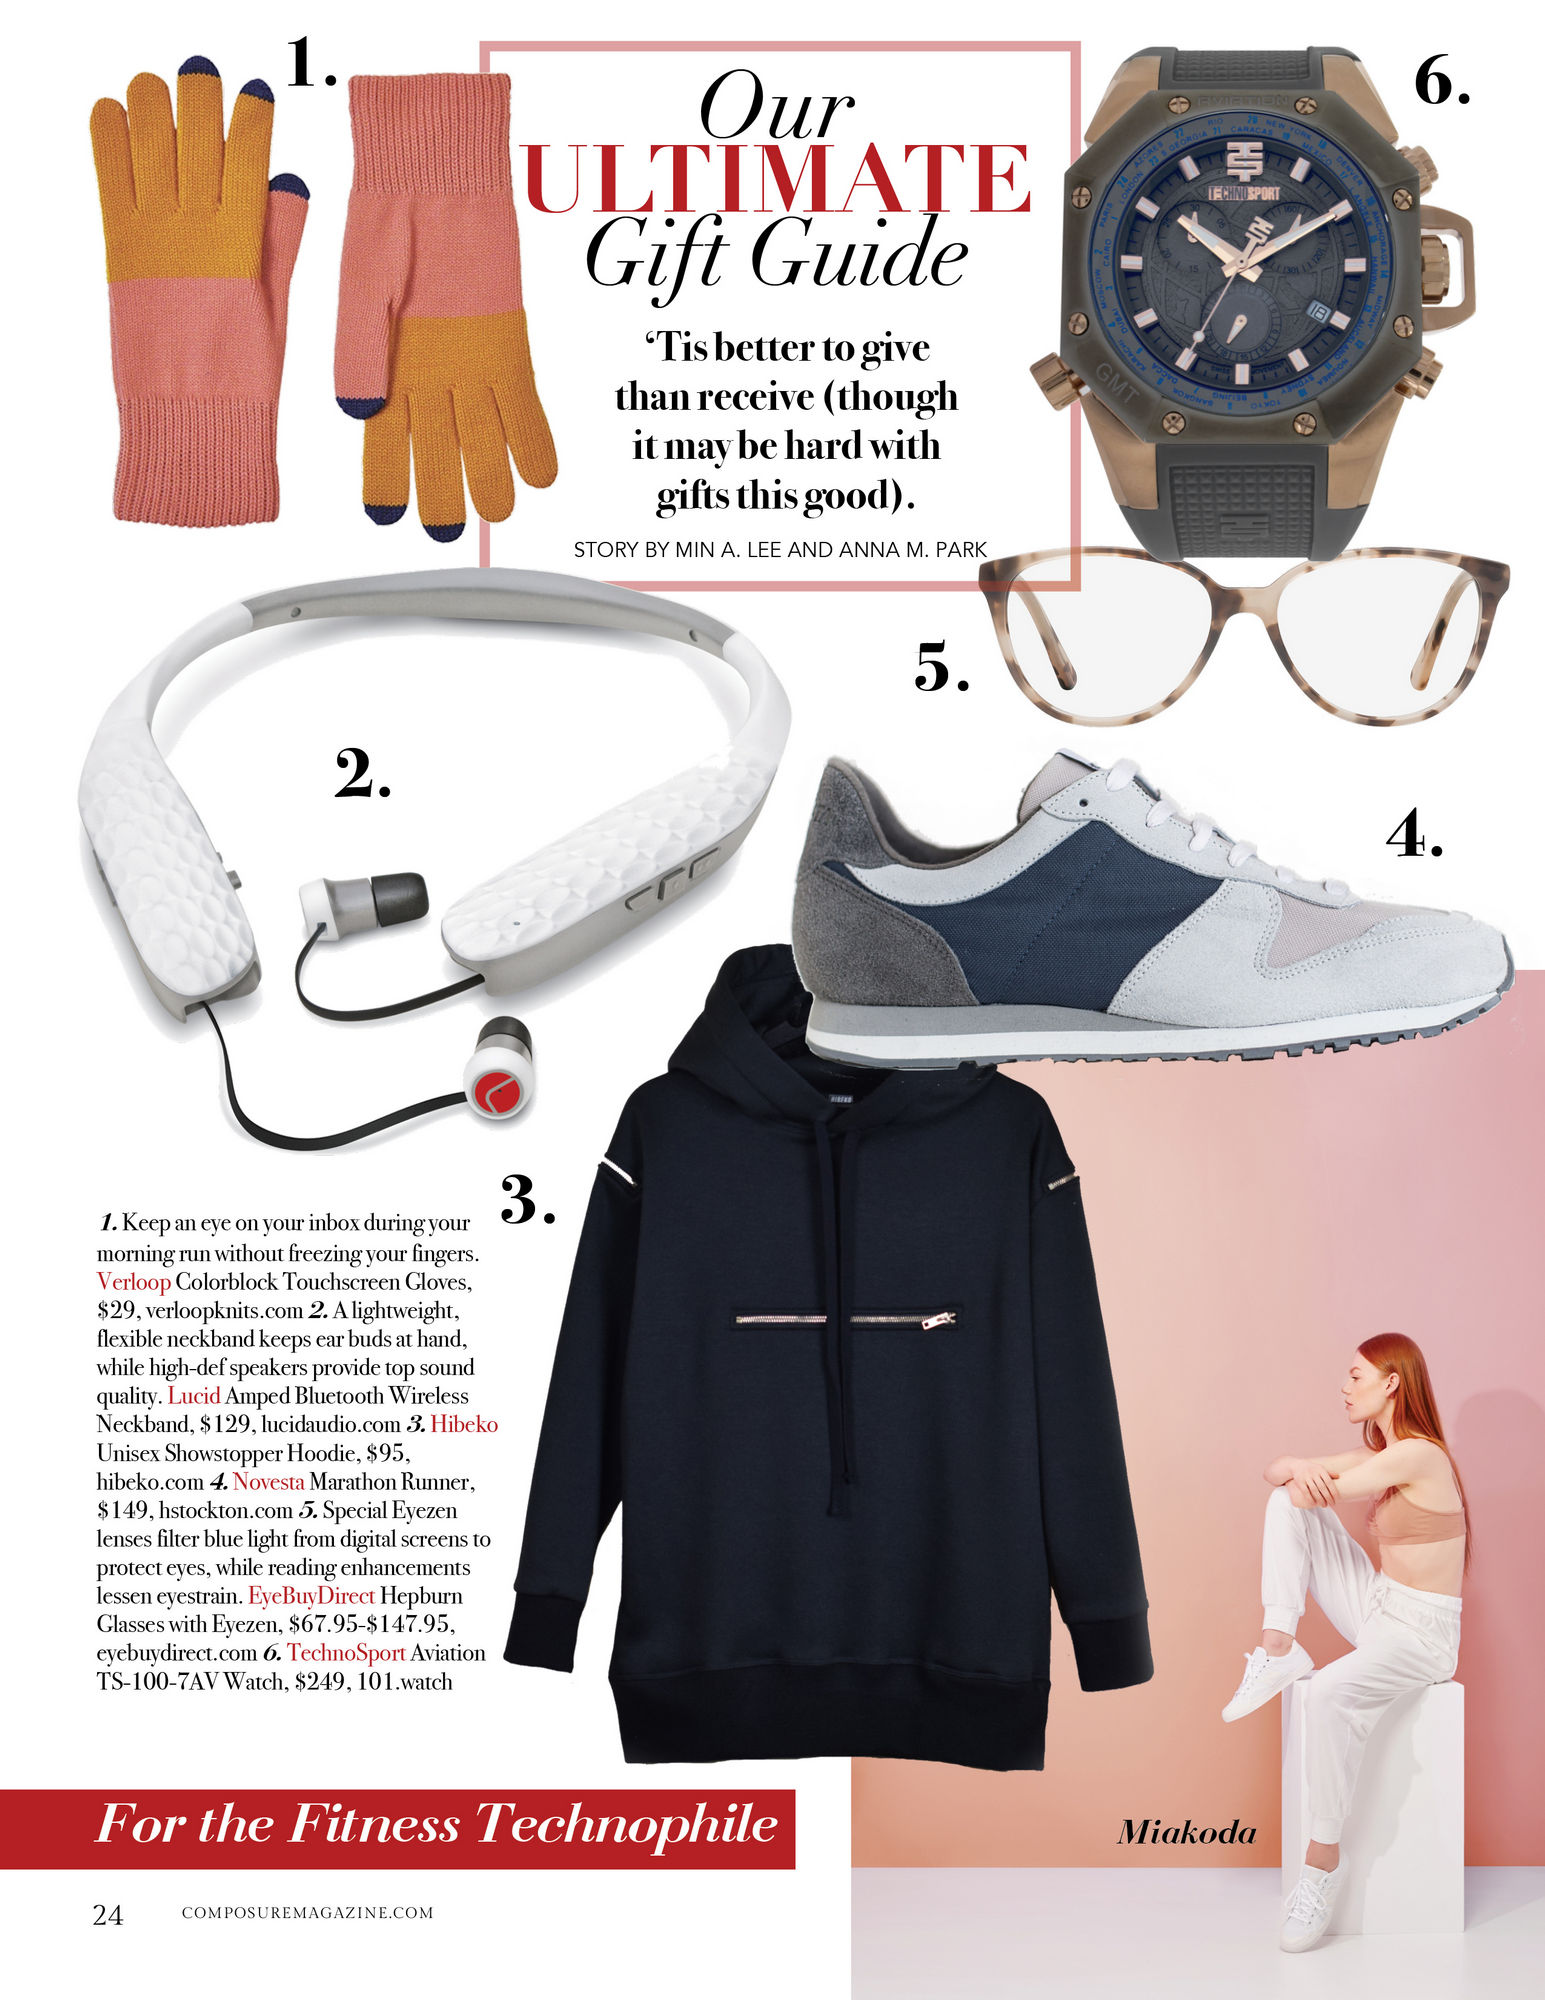 Our ULTIMATE Gift Guide: For the Fitness Technophile